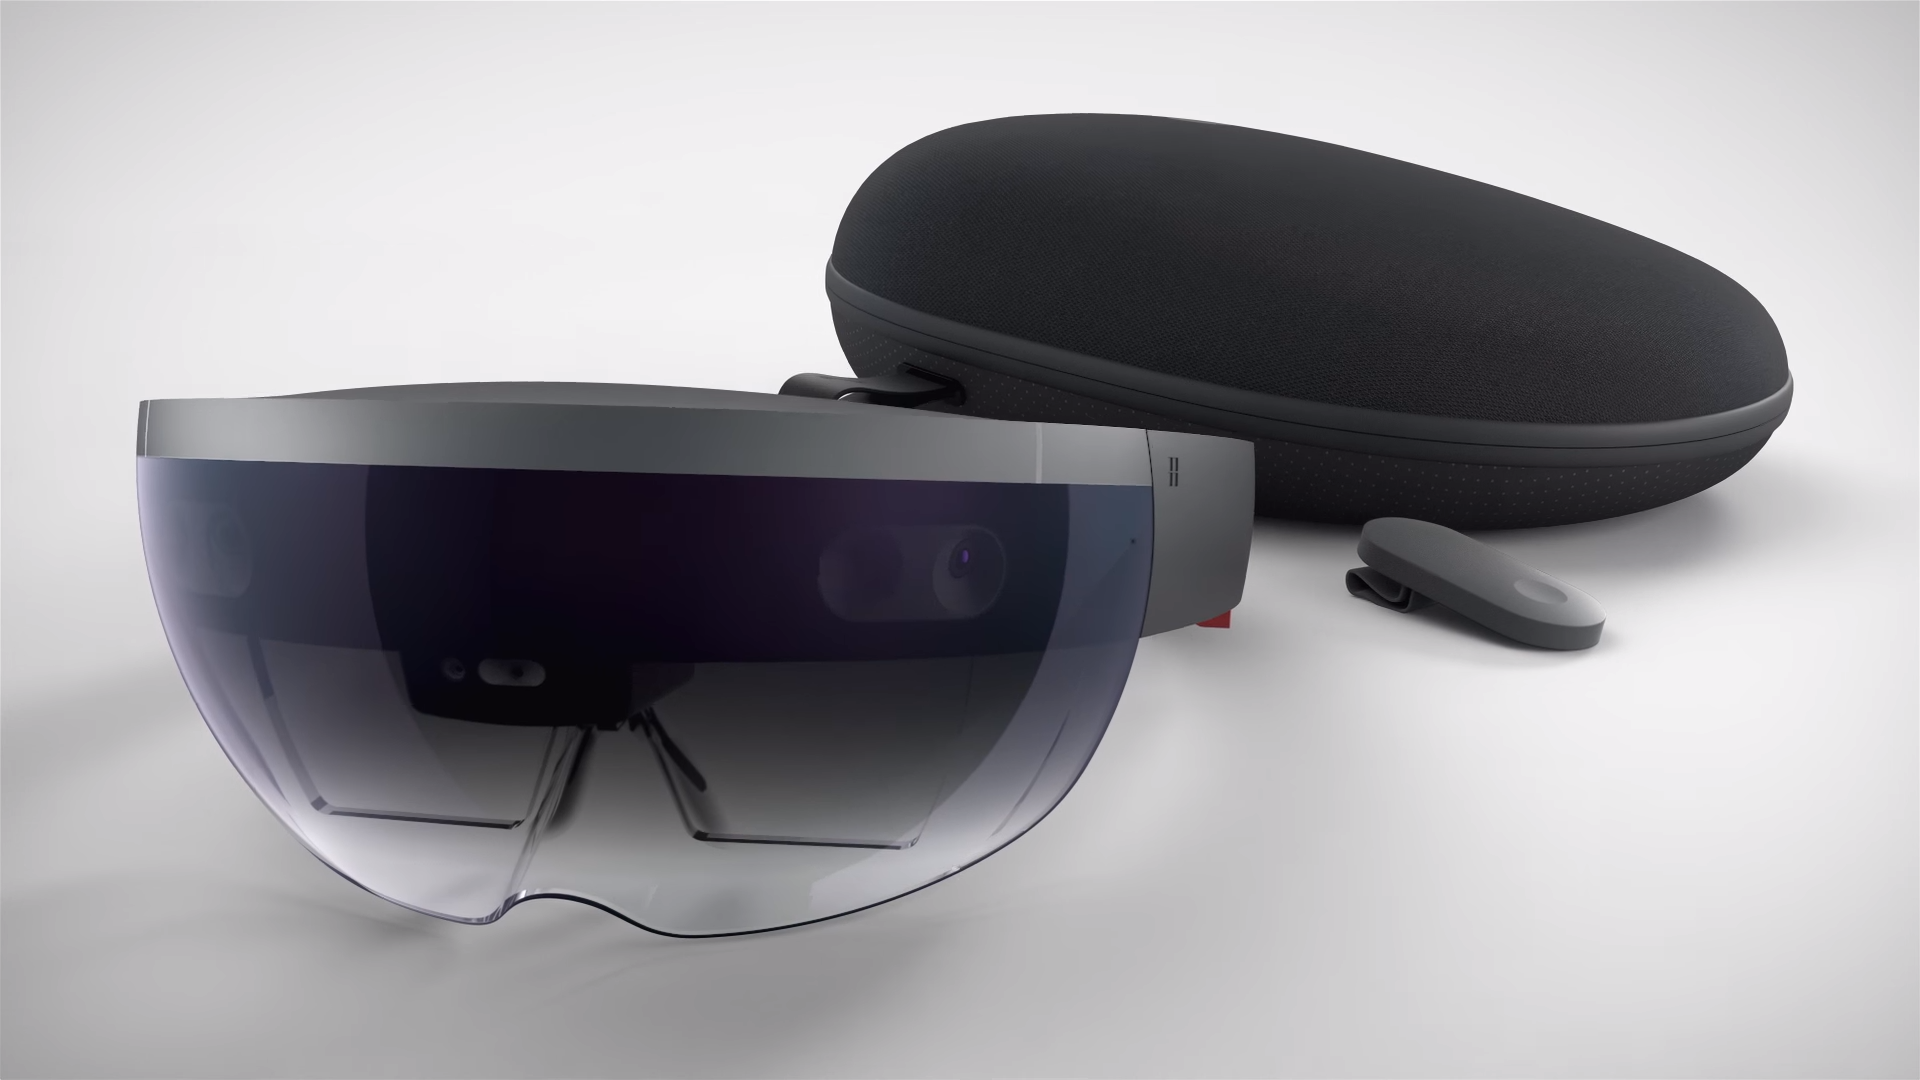 Photo of Microsoft leaps: HoloLens laminated reality glasses are available (almost) for everyone